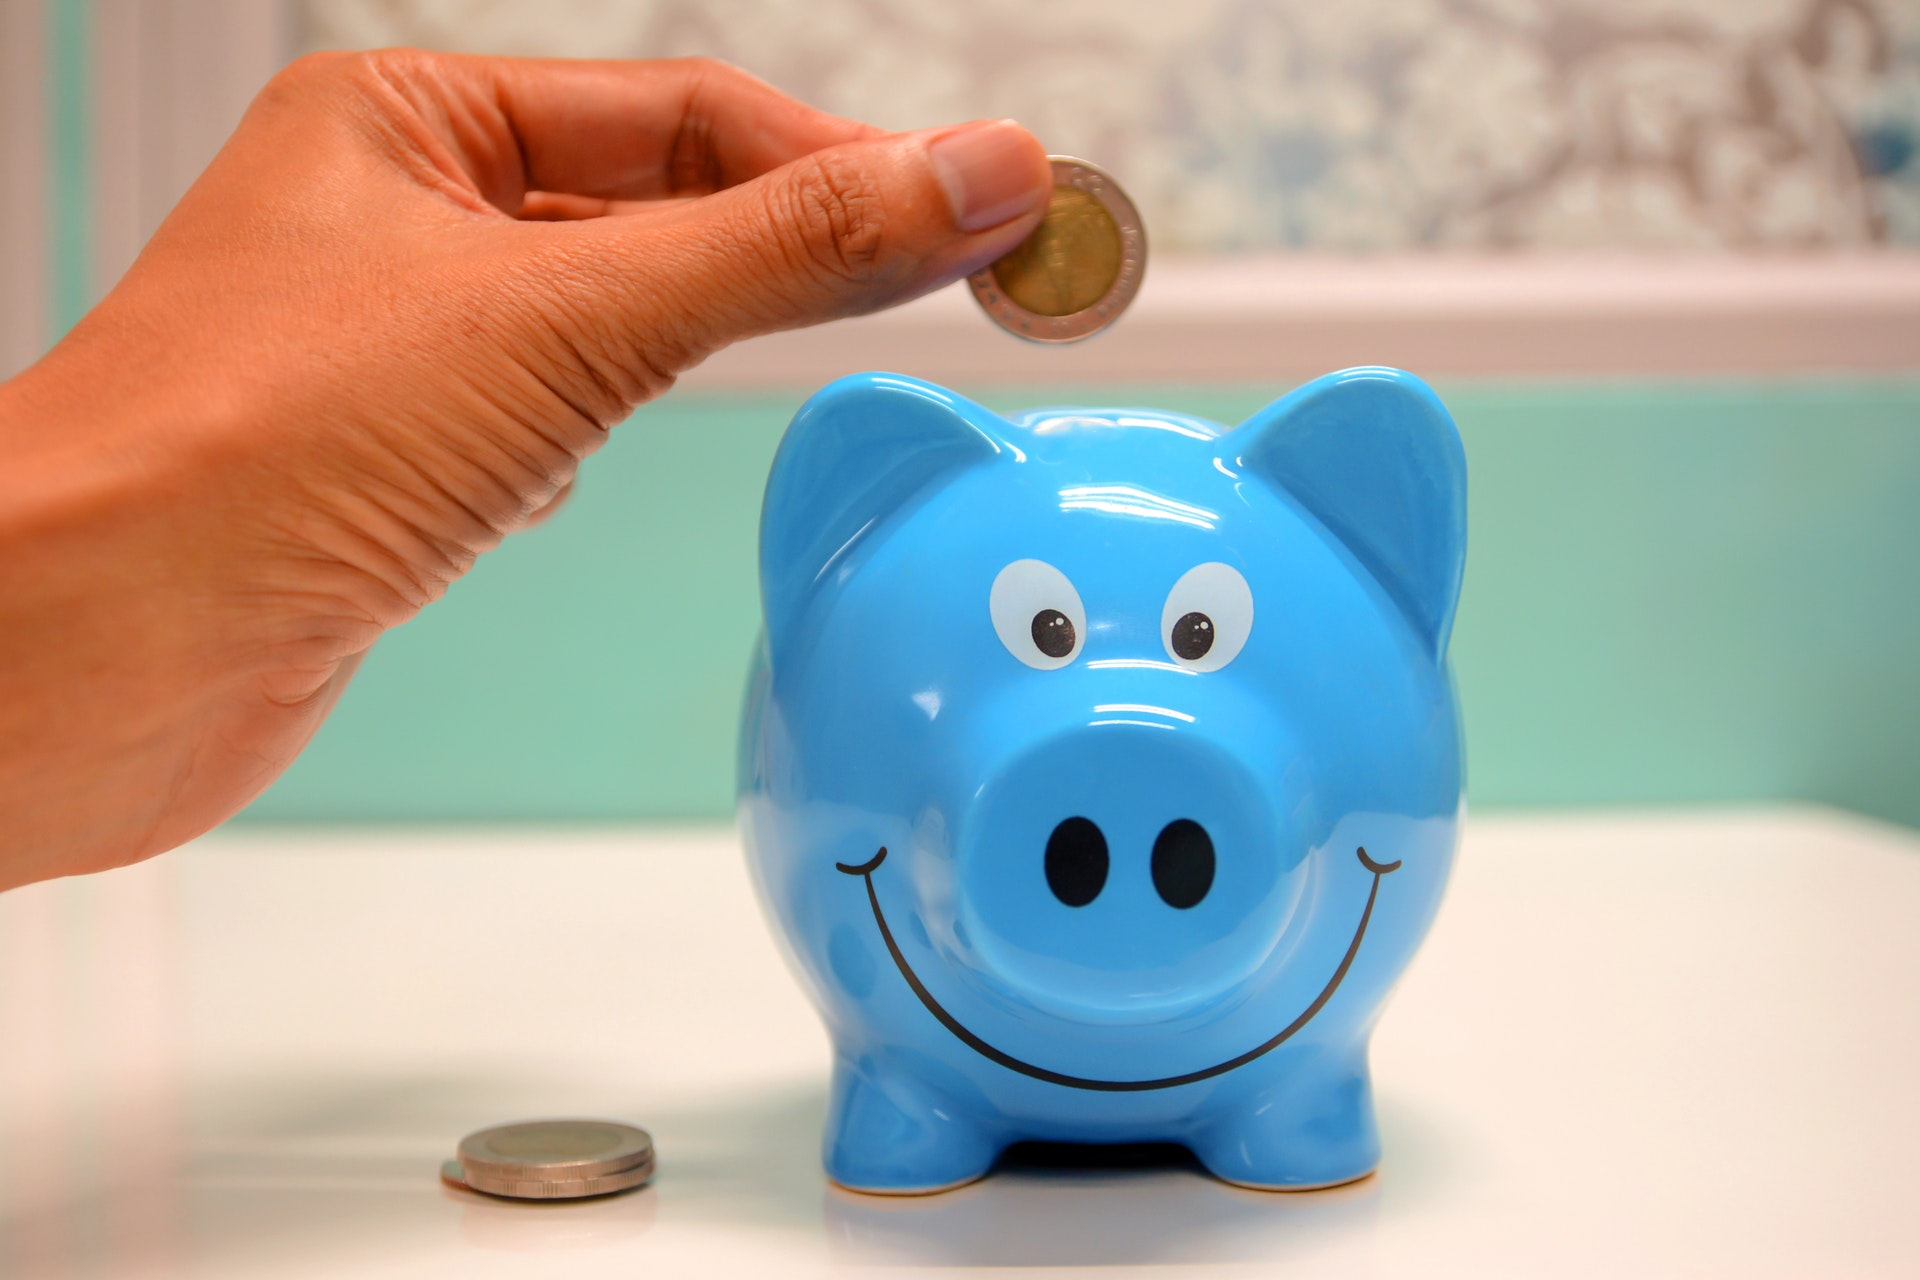 Saving pennies in a piggy bank